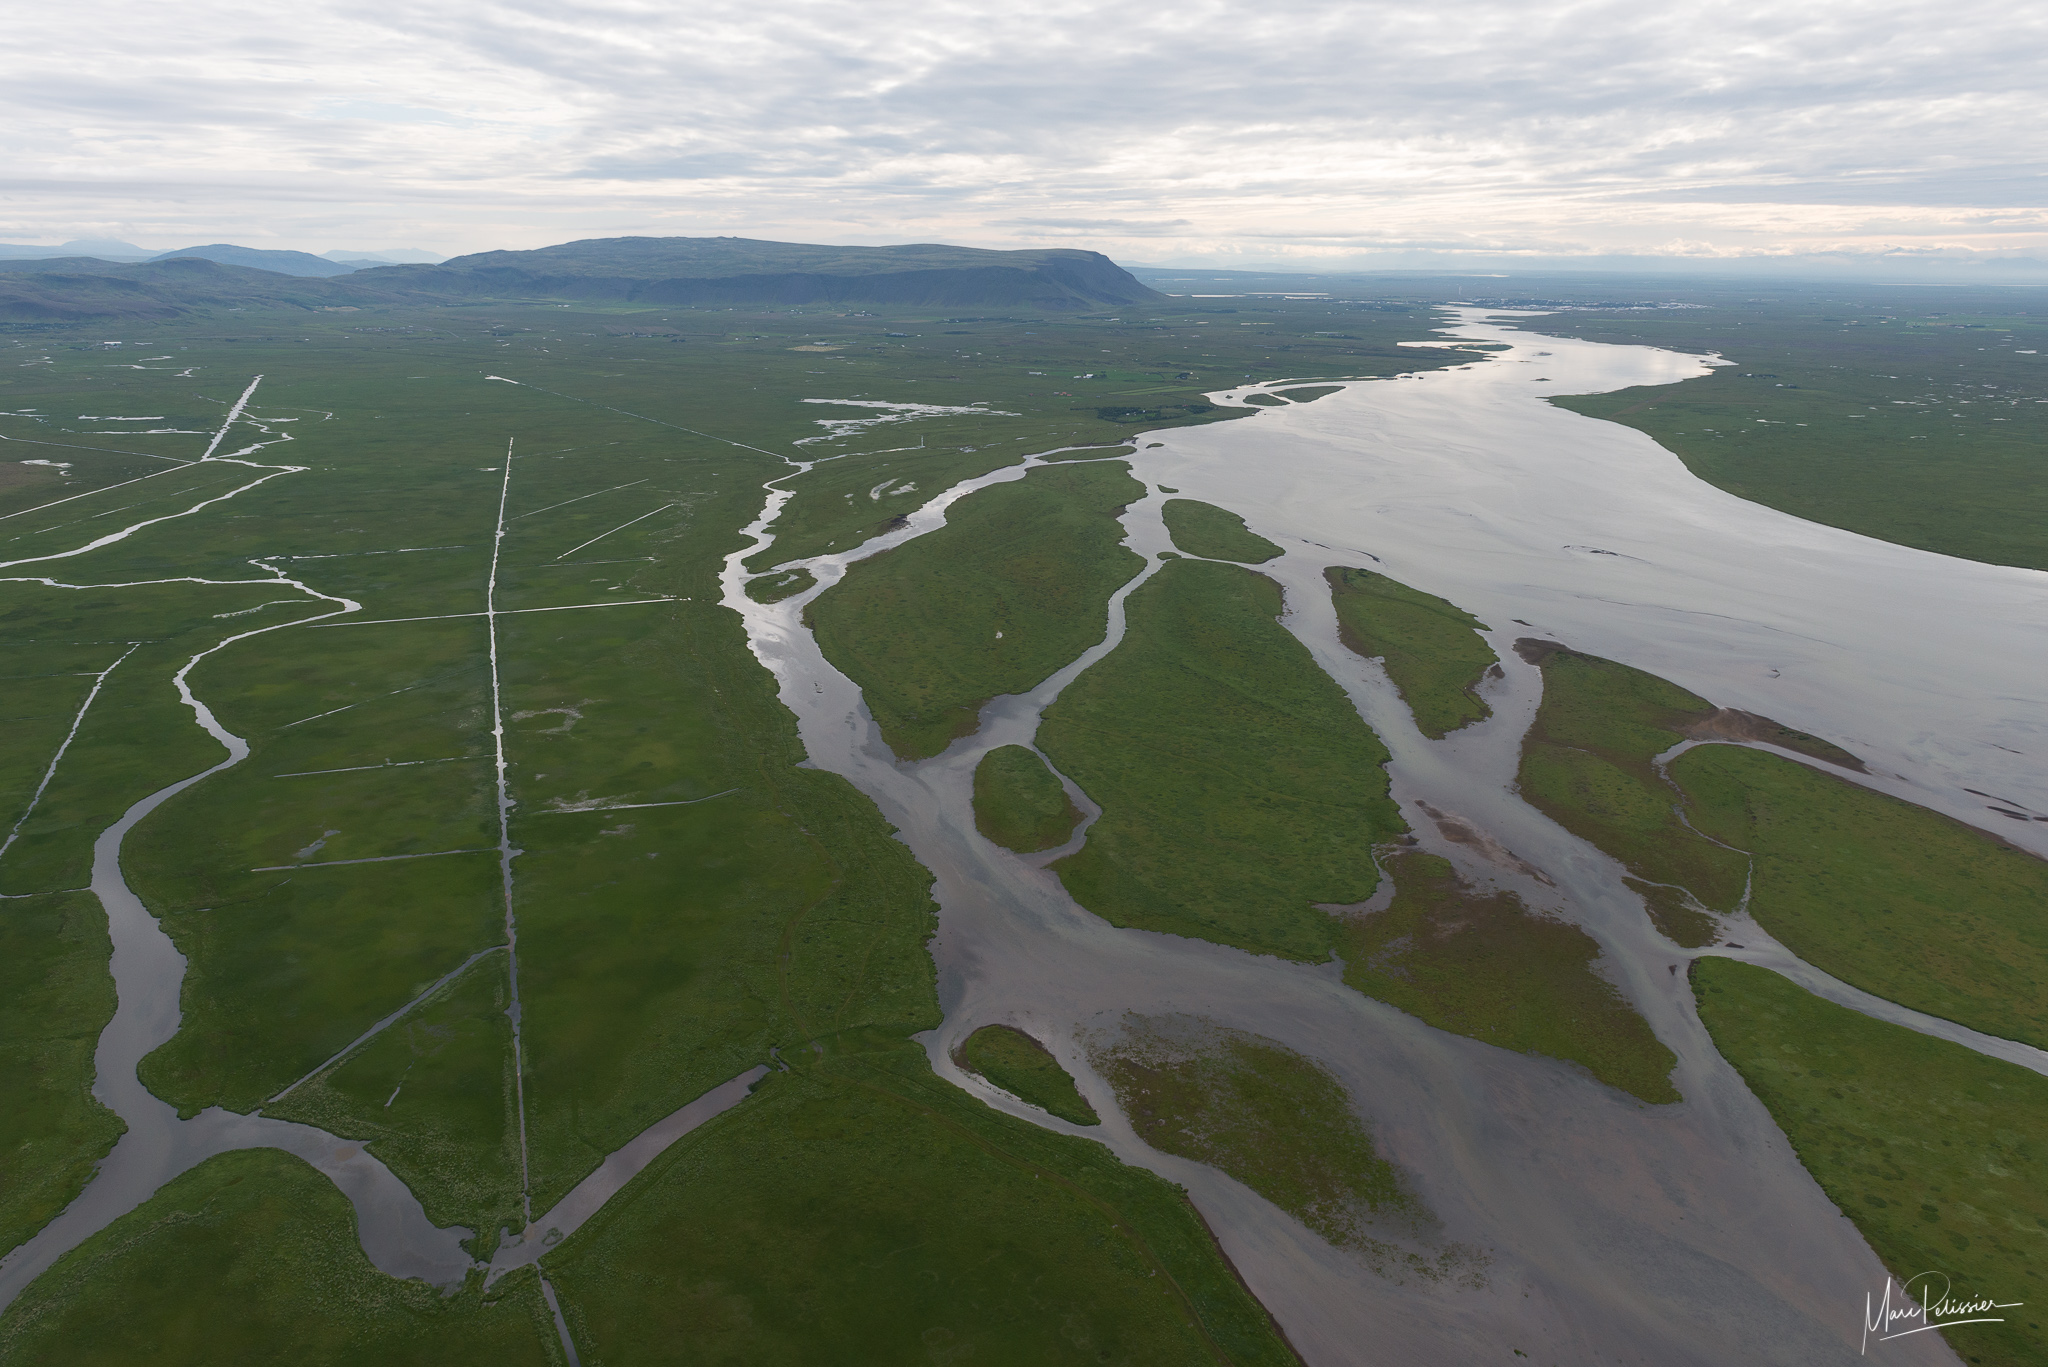 Olfusa river after Selfoss, Iceland